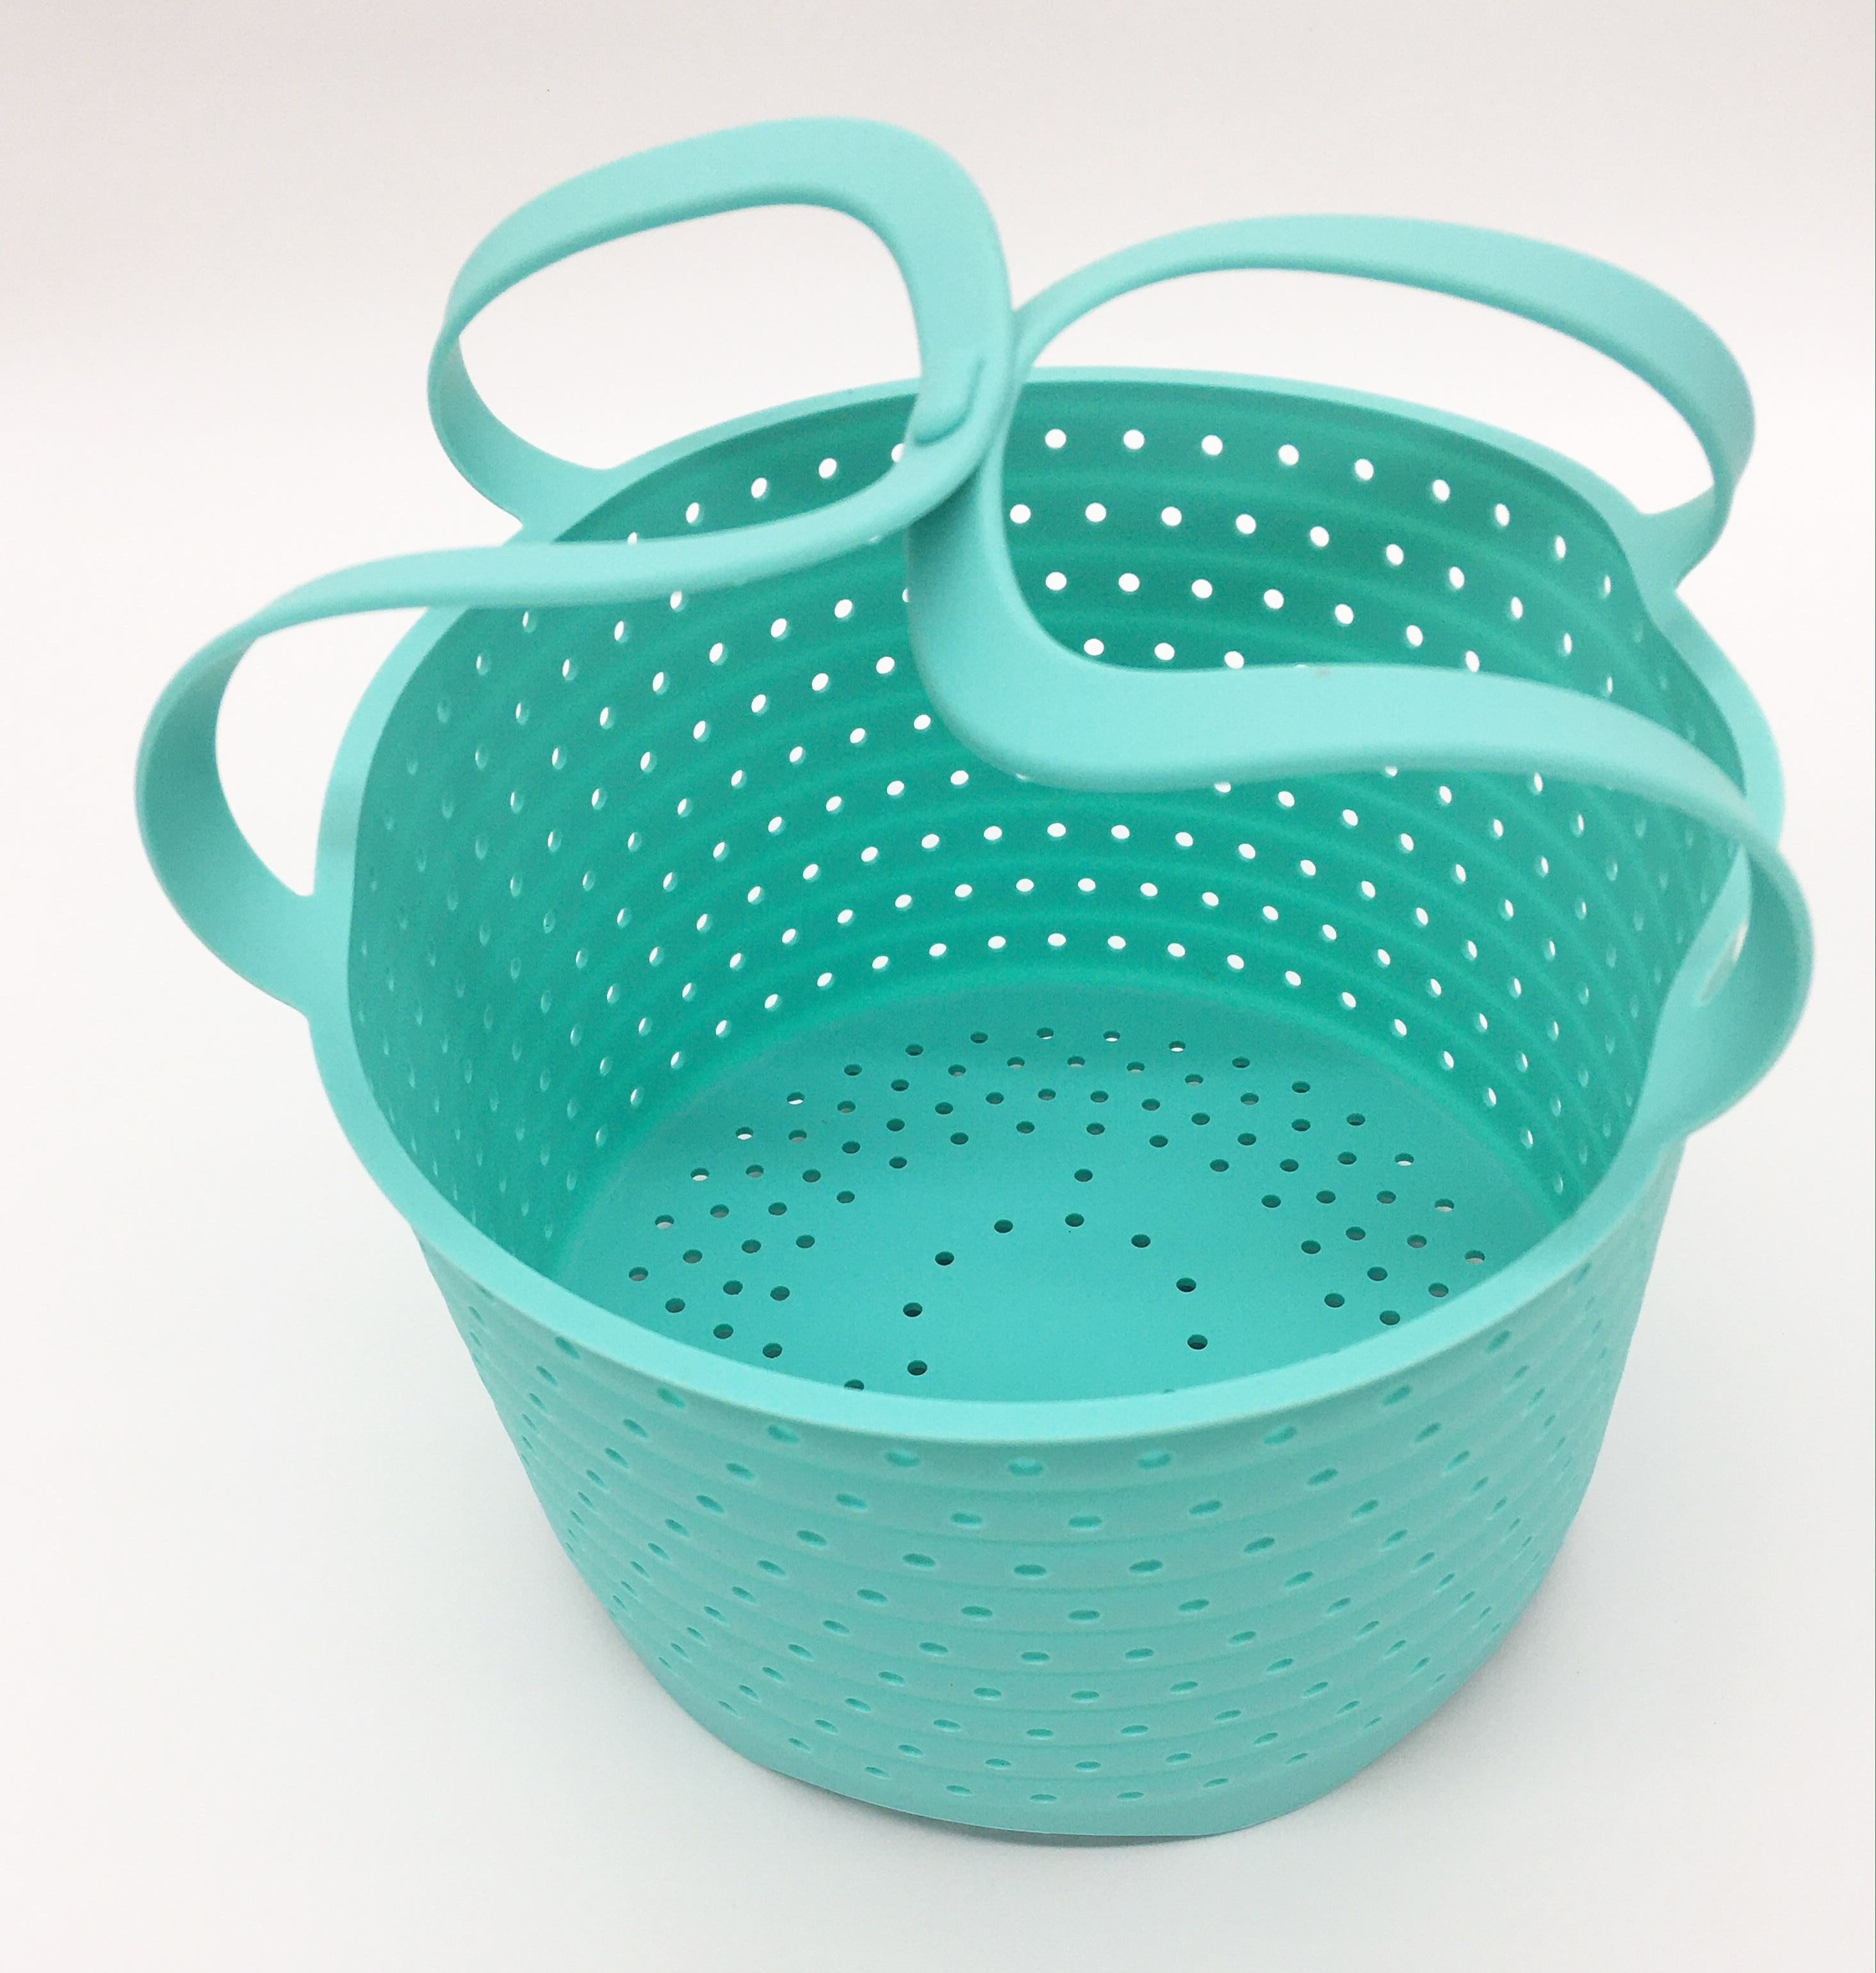 2020 New Coming Space-Saving Foldable Silicone Steamer Basket, IP POT Pressure Cookers Accessories Steamer